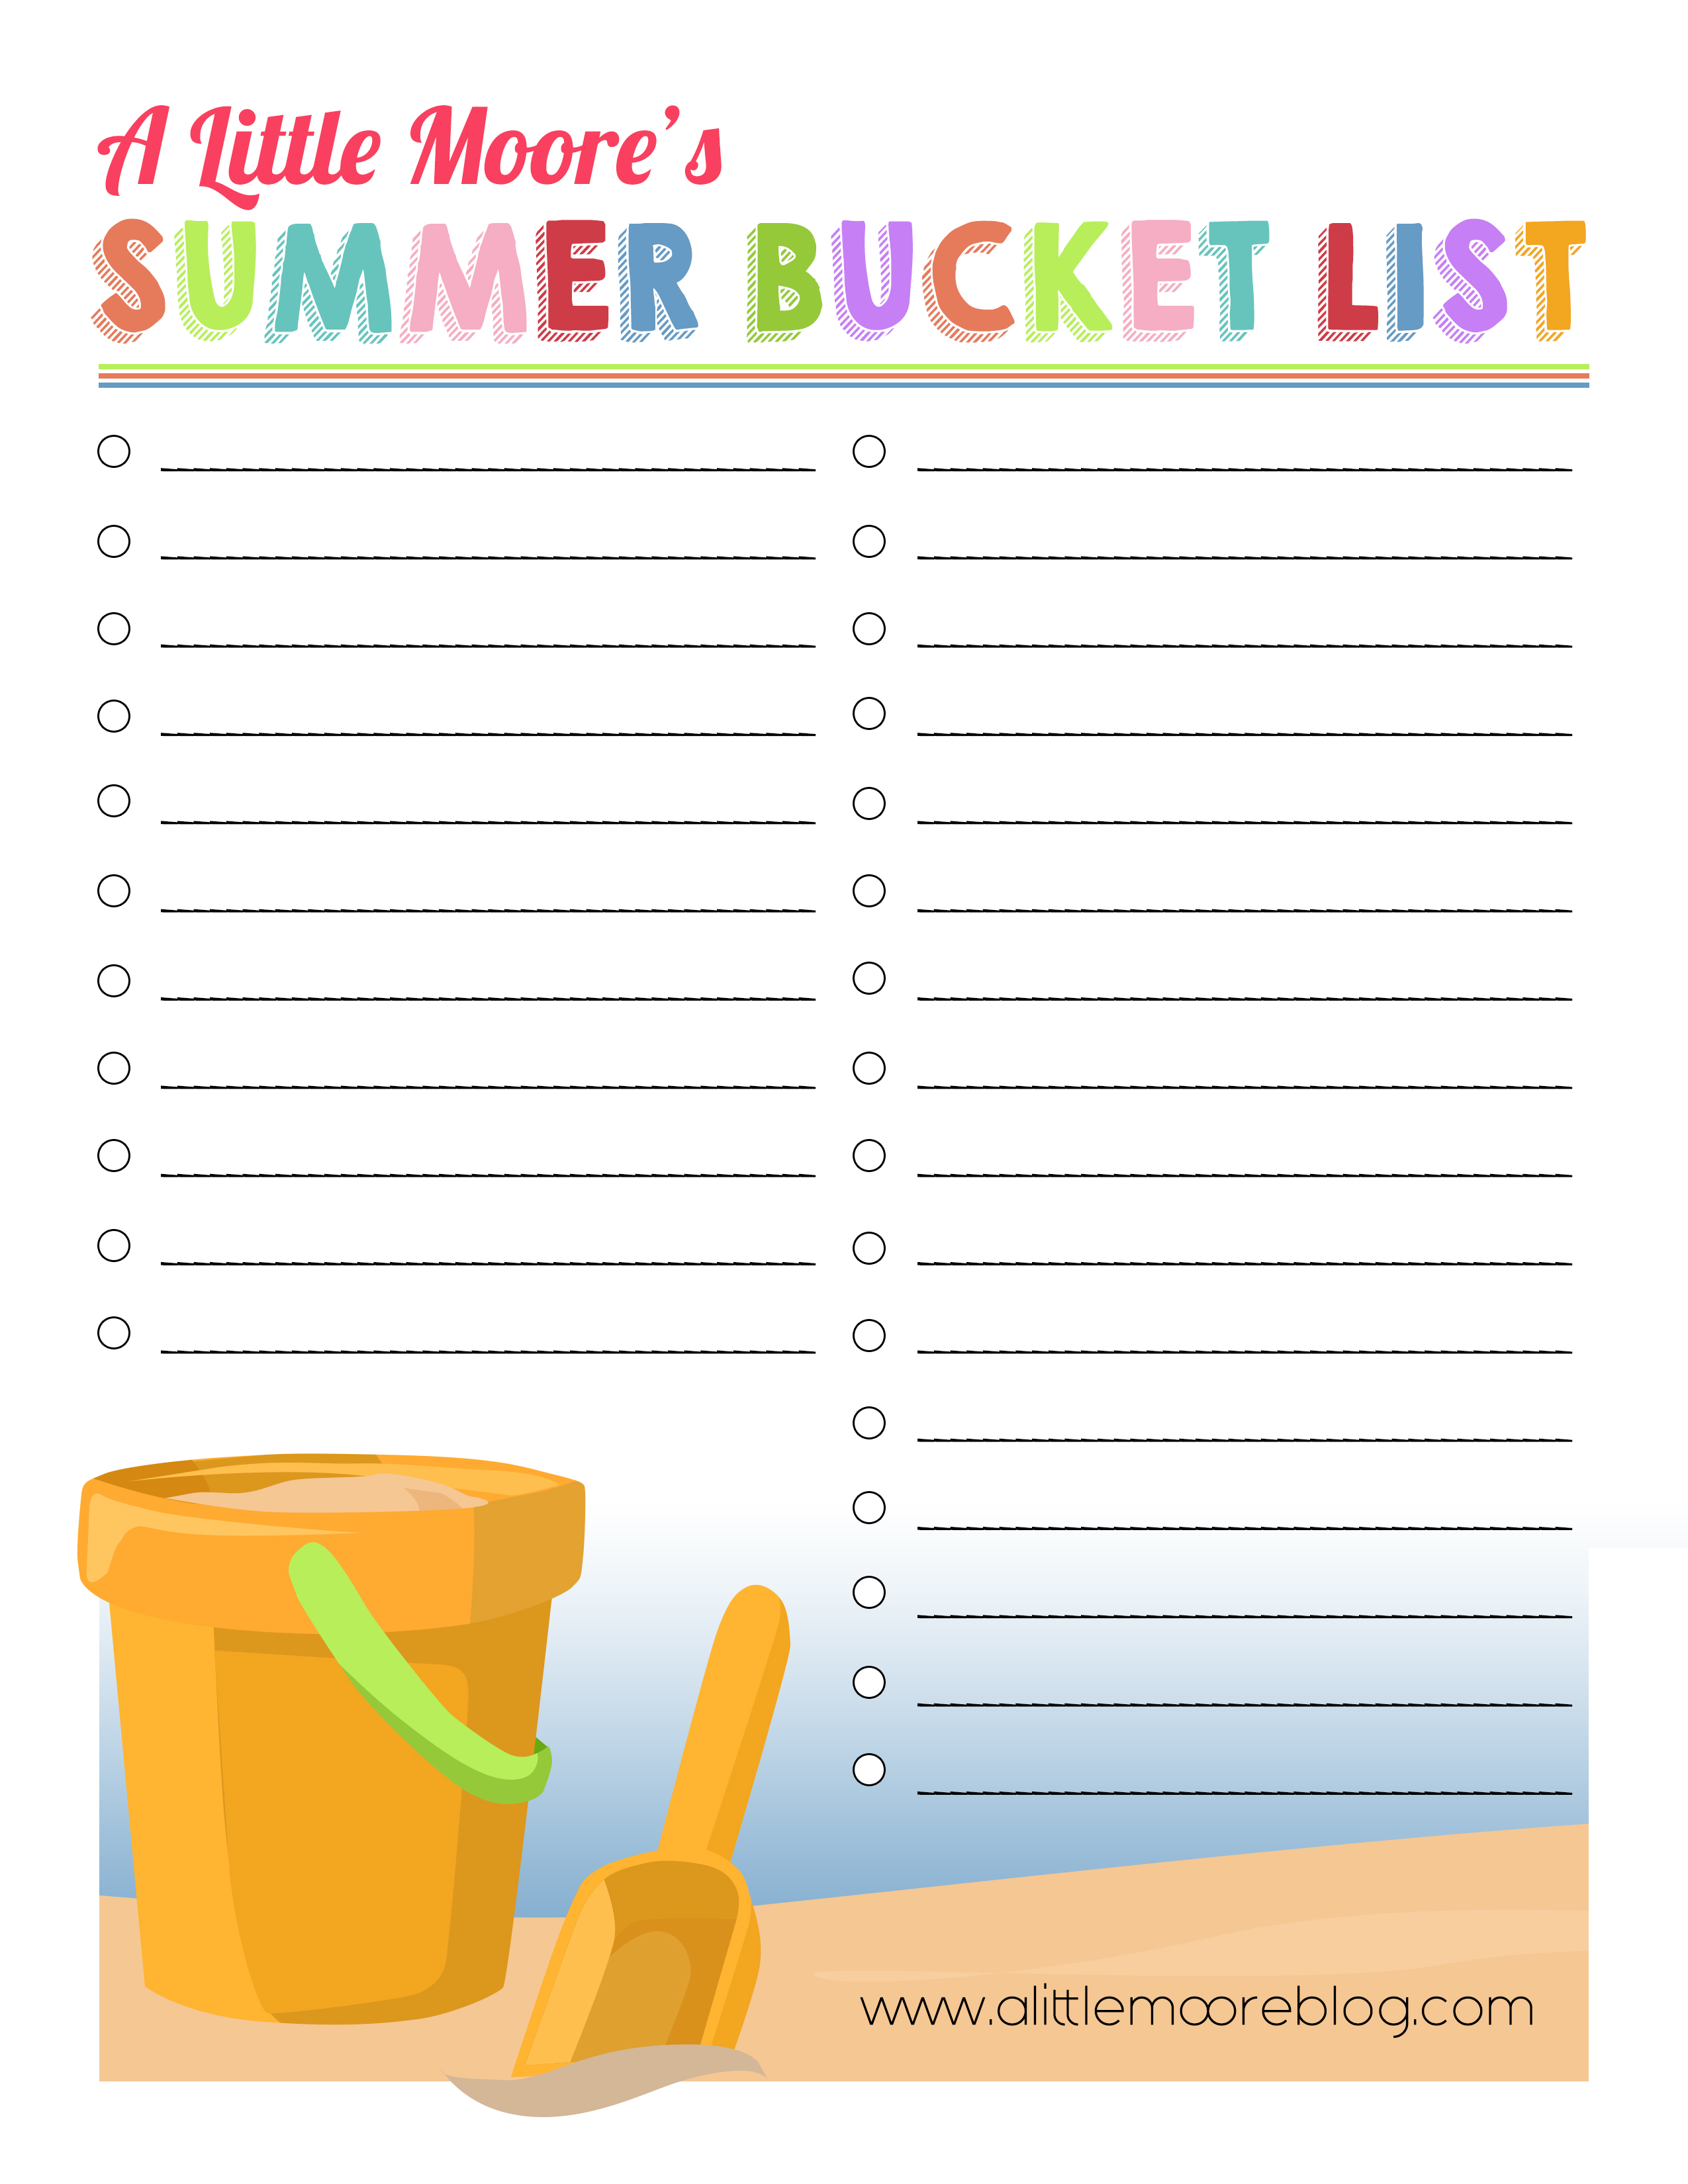 graphic about Summer Bucket List Printable identify Make Your Personal Summer season Bucket Listing Printable - A Minimal Moore